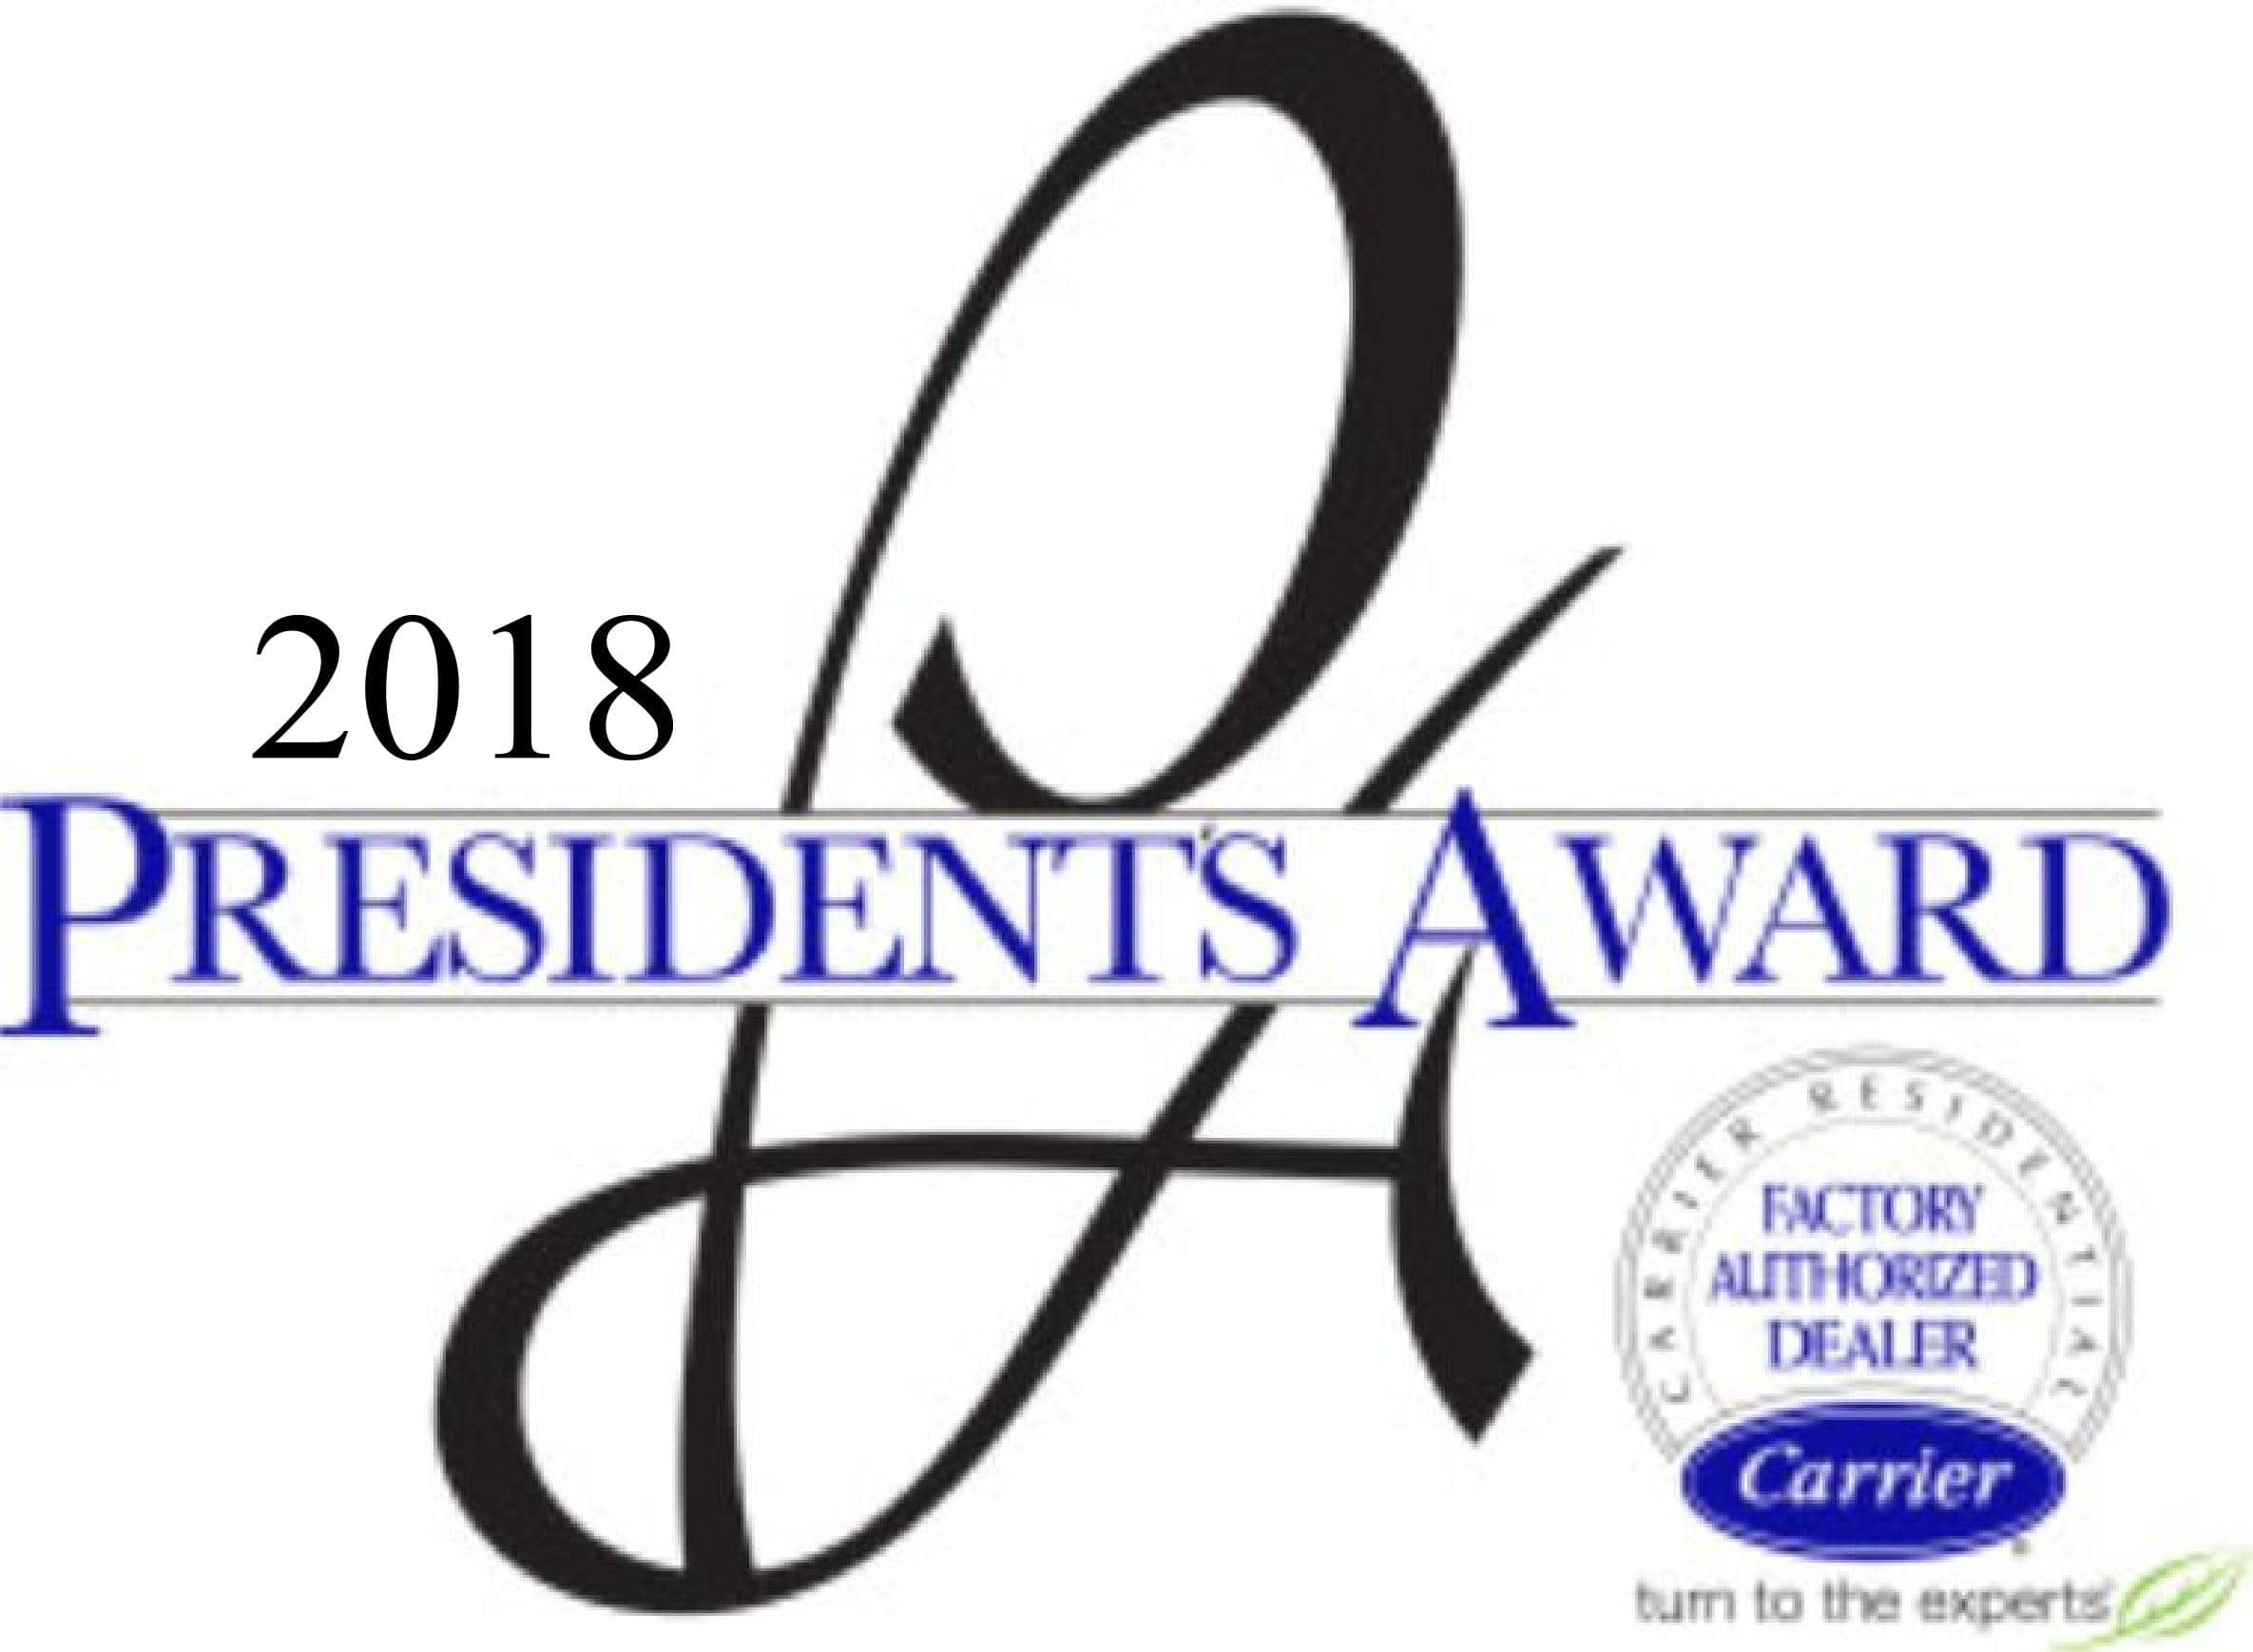 Carrier President's Award Winner